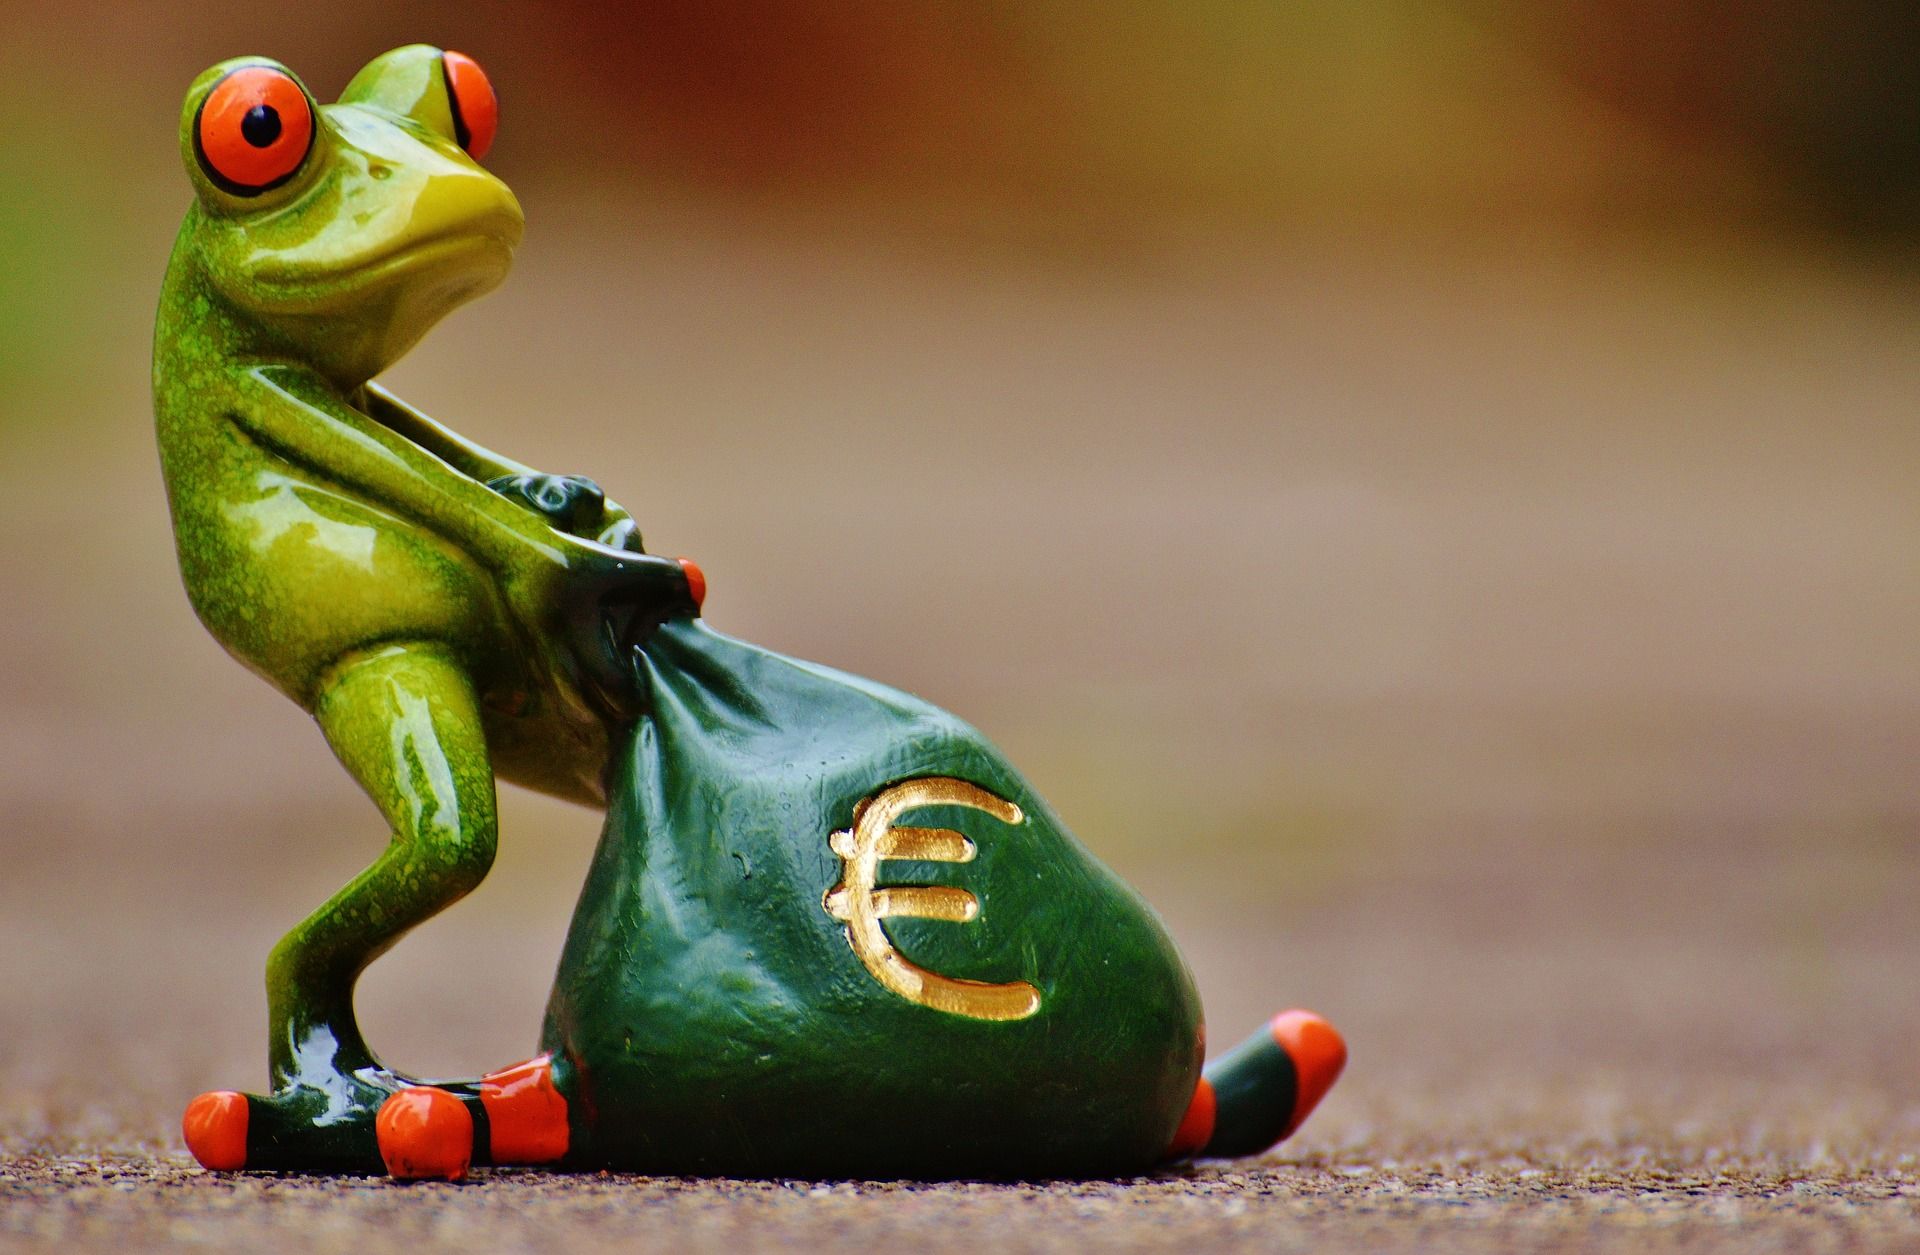 Frog figurine with a bag of money